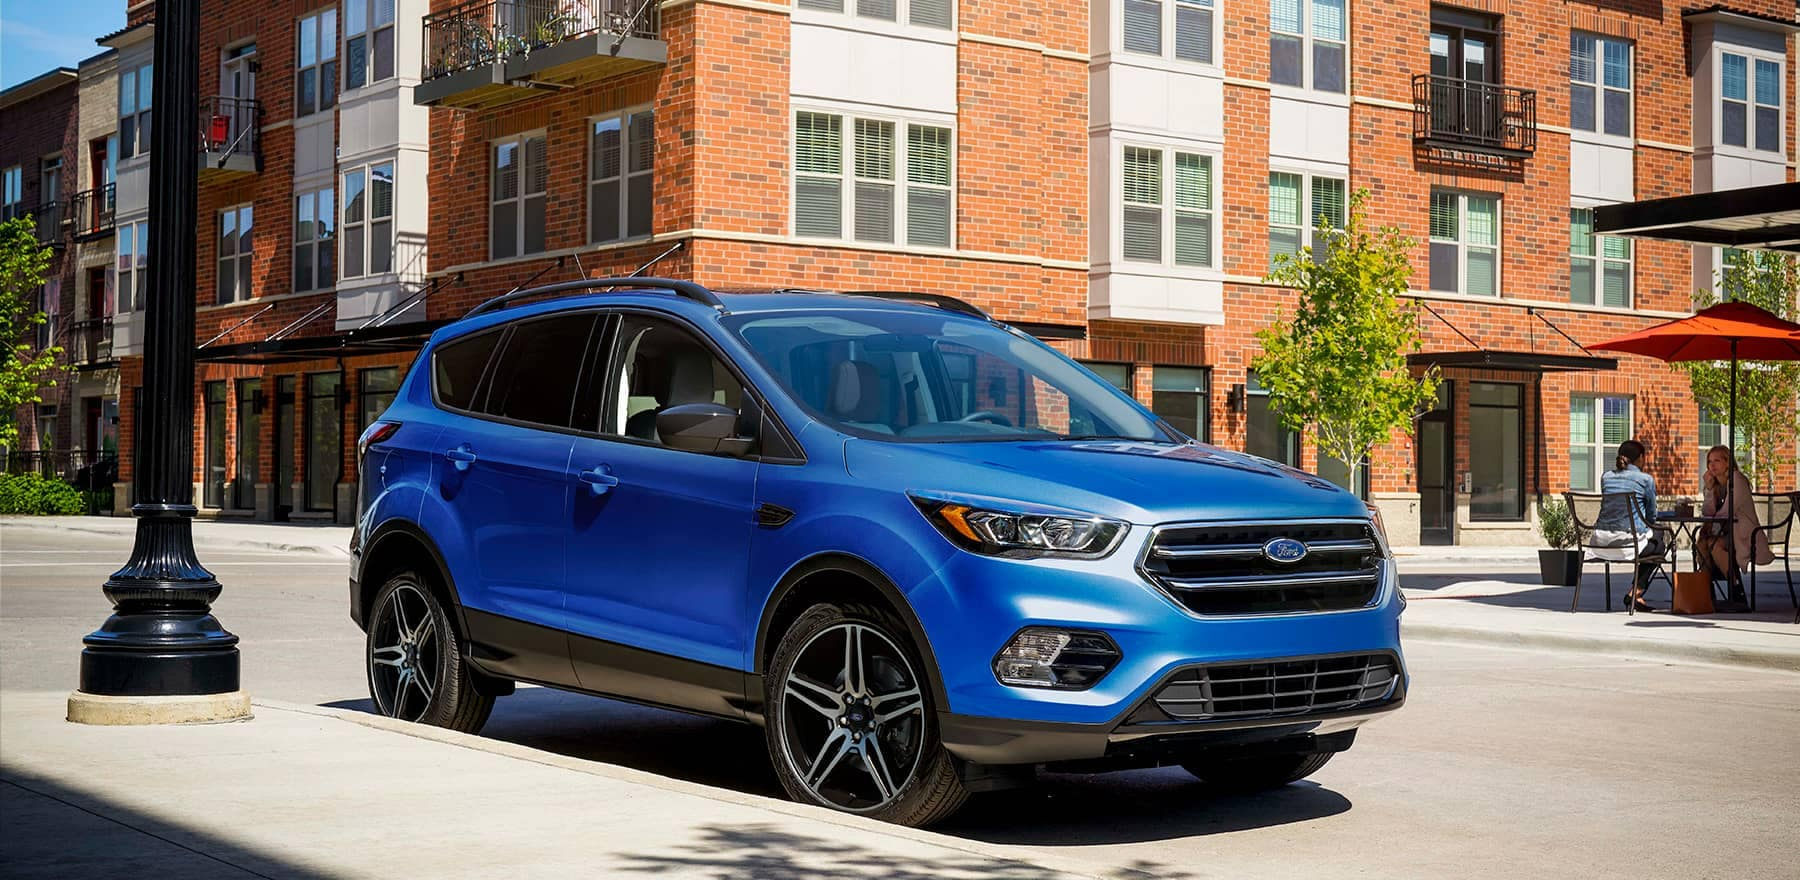 Ford-Escape-Blue-on-the-street